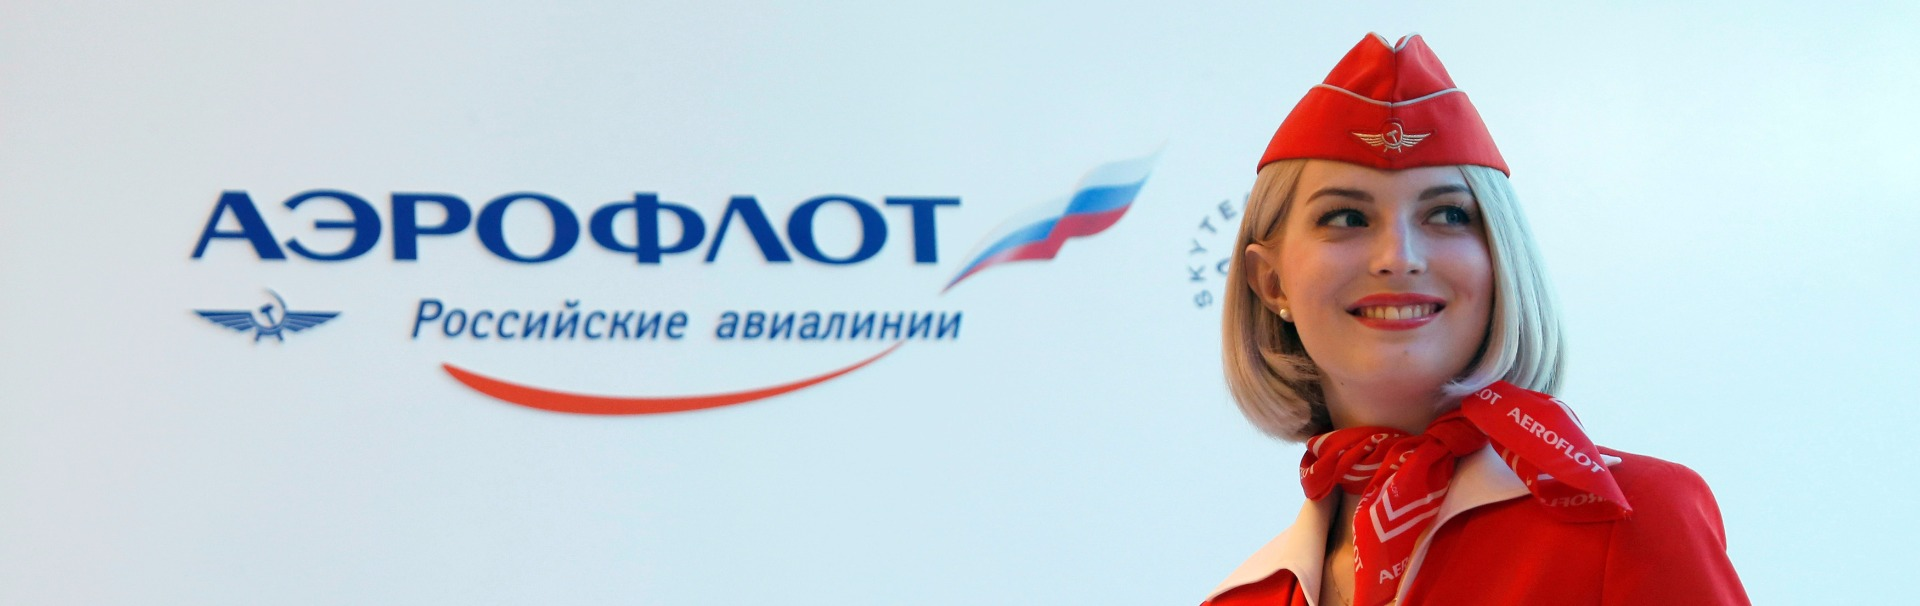 Enjoy extra luggage allowance this winter with Aeroflot